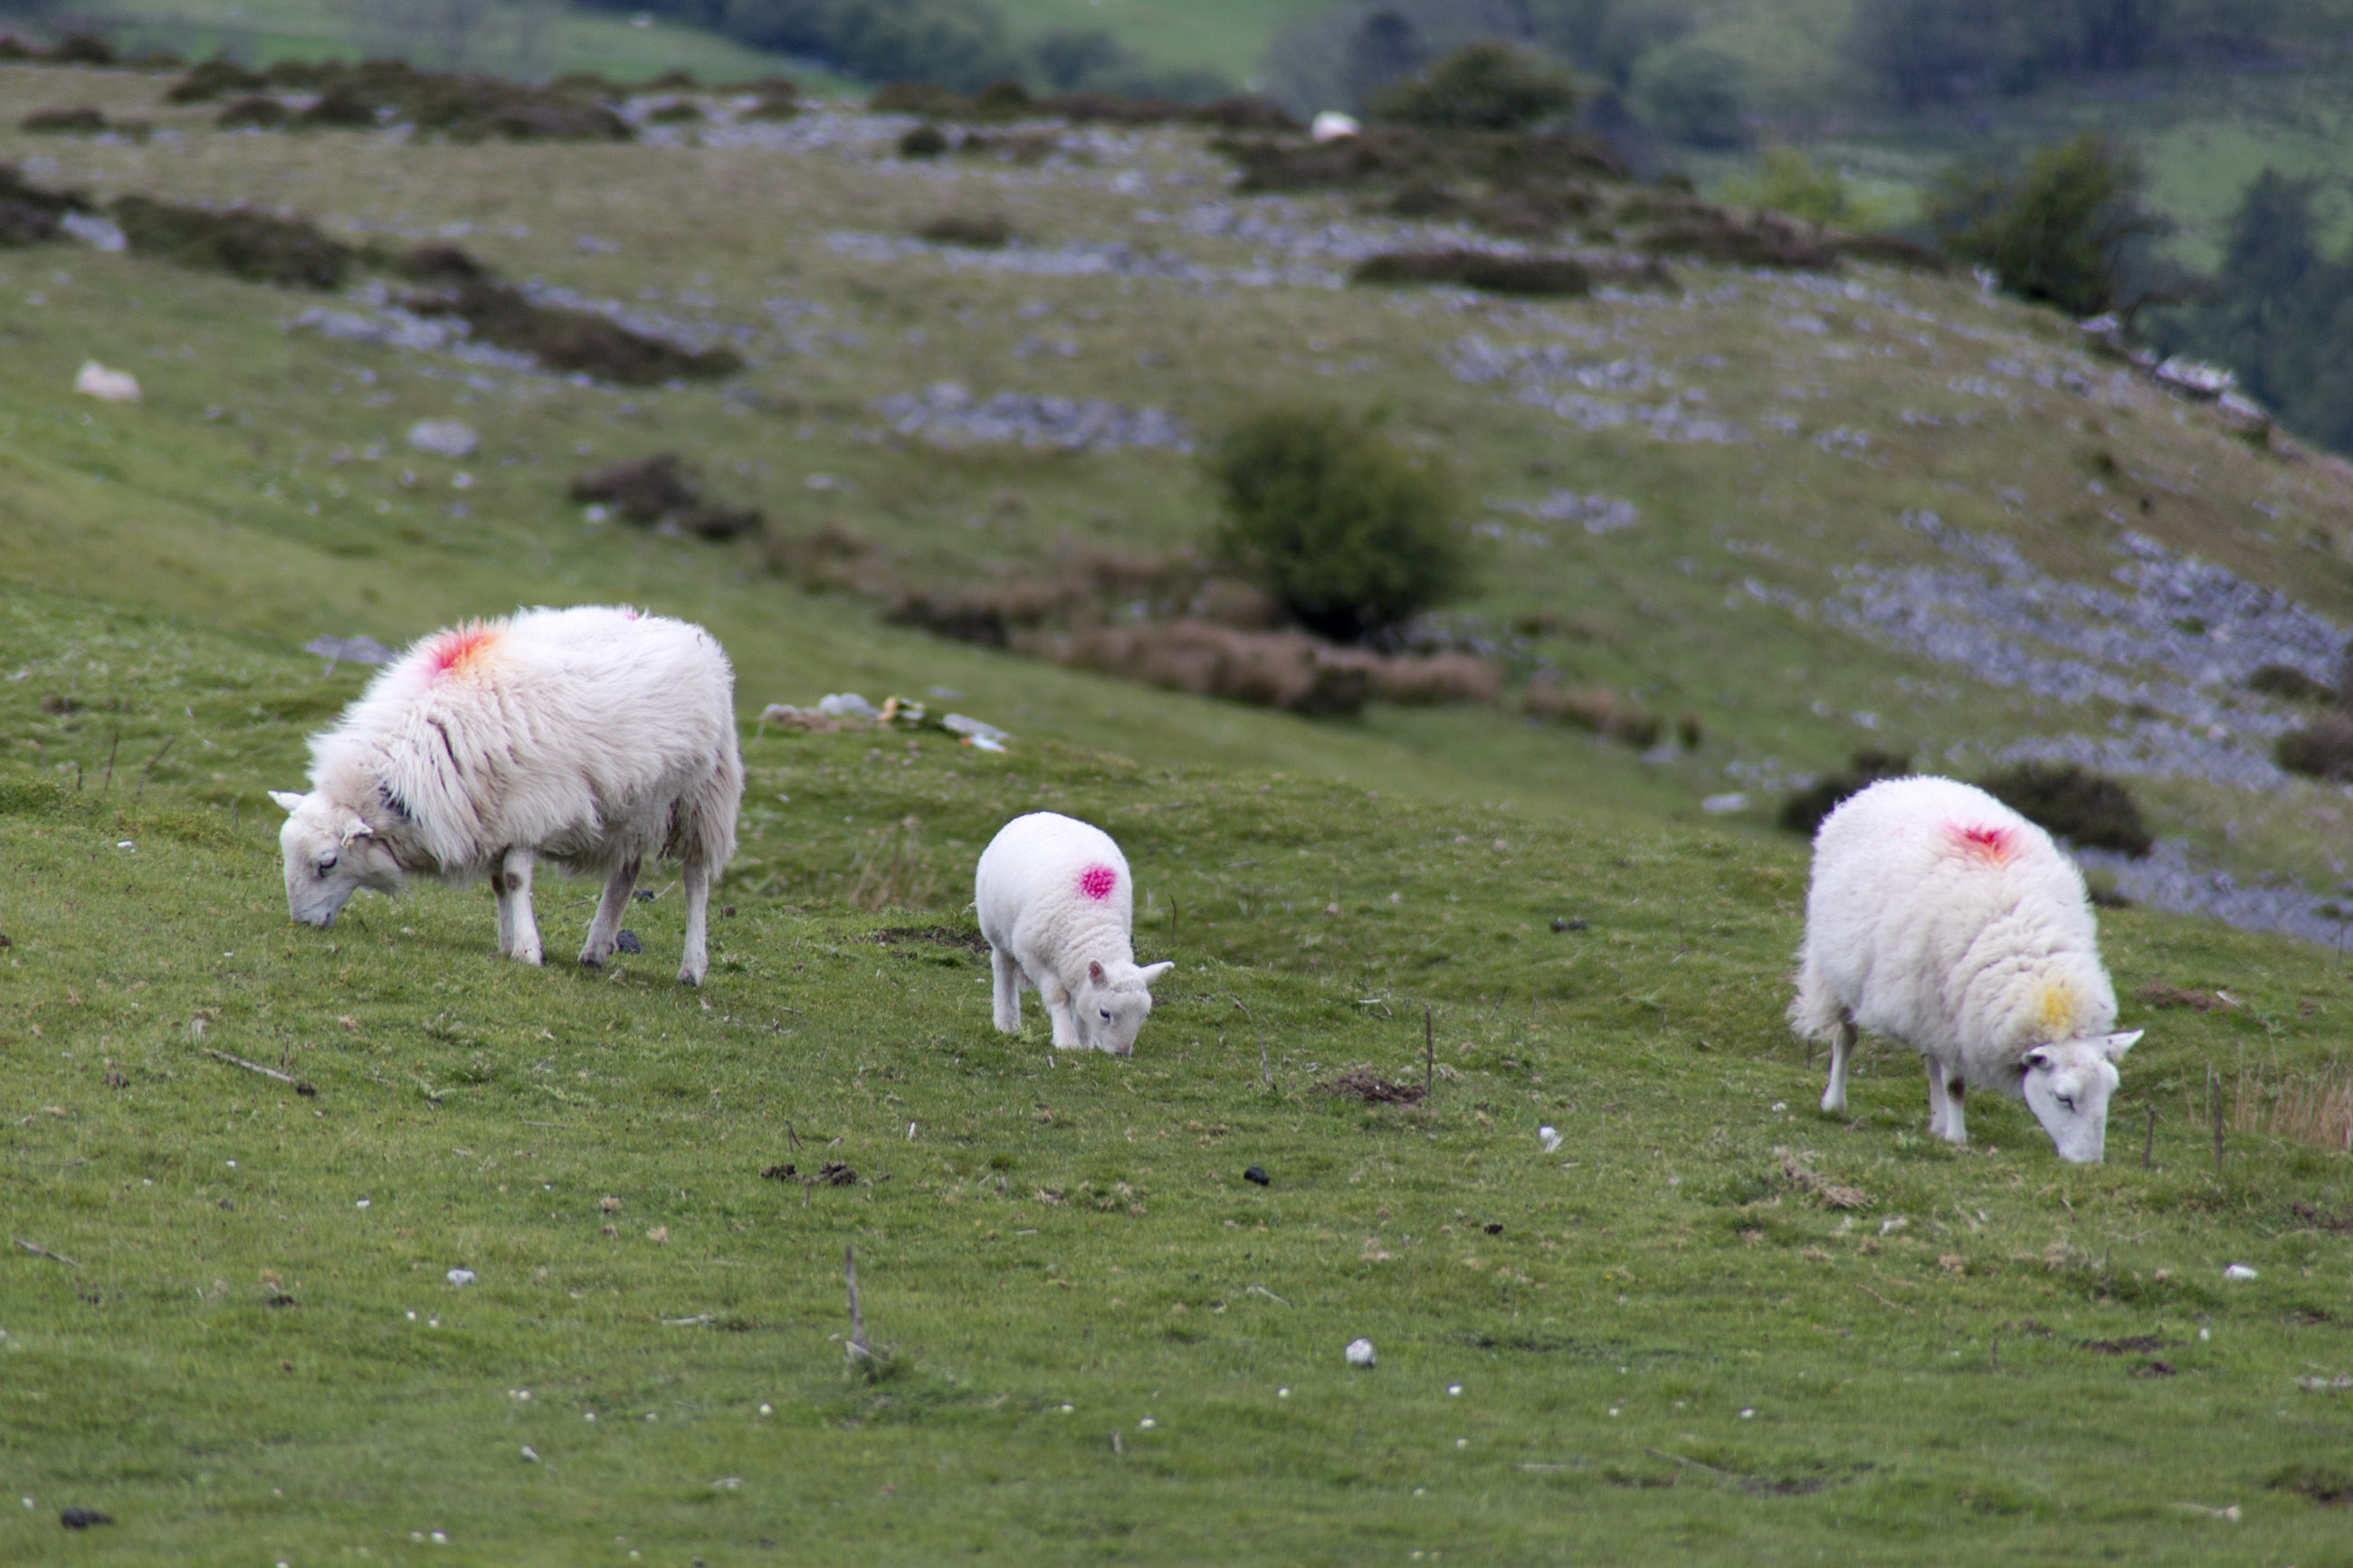 Sheep Grazing, Agriculture, Herd, Weather, View, HQ Photo